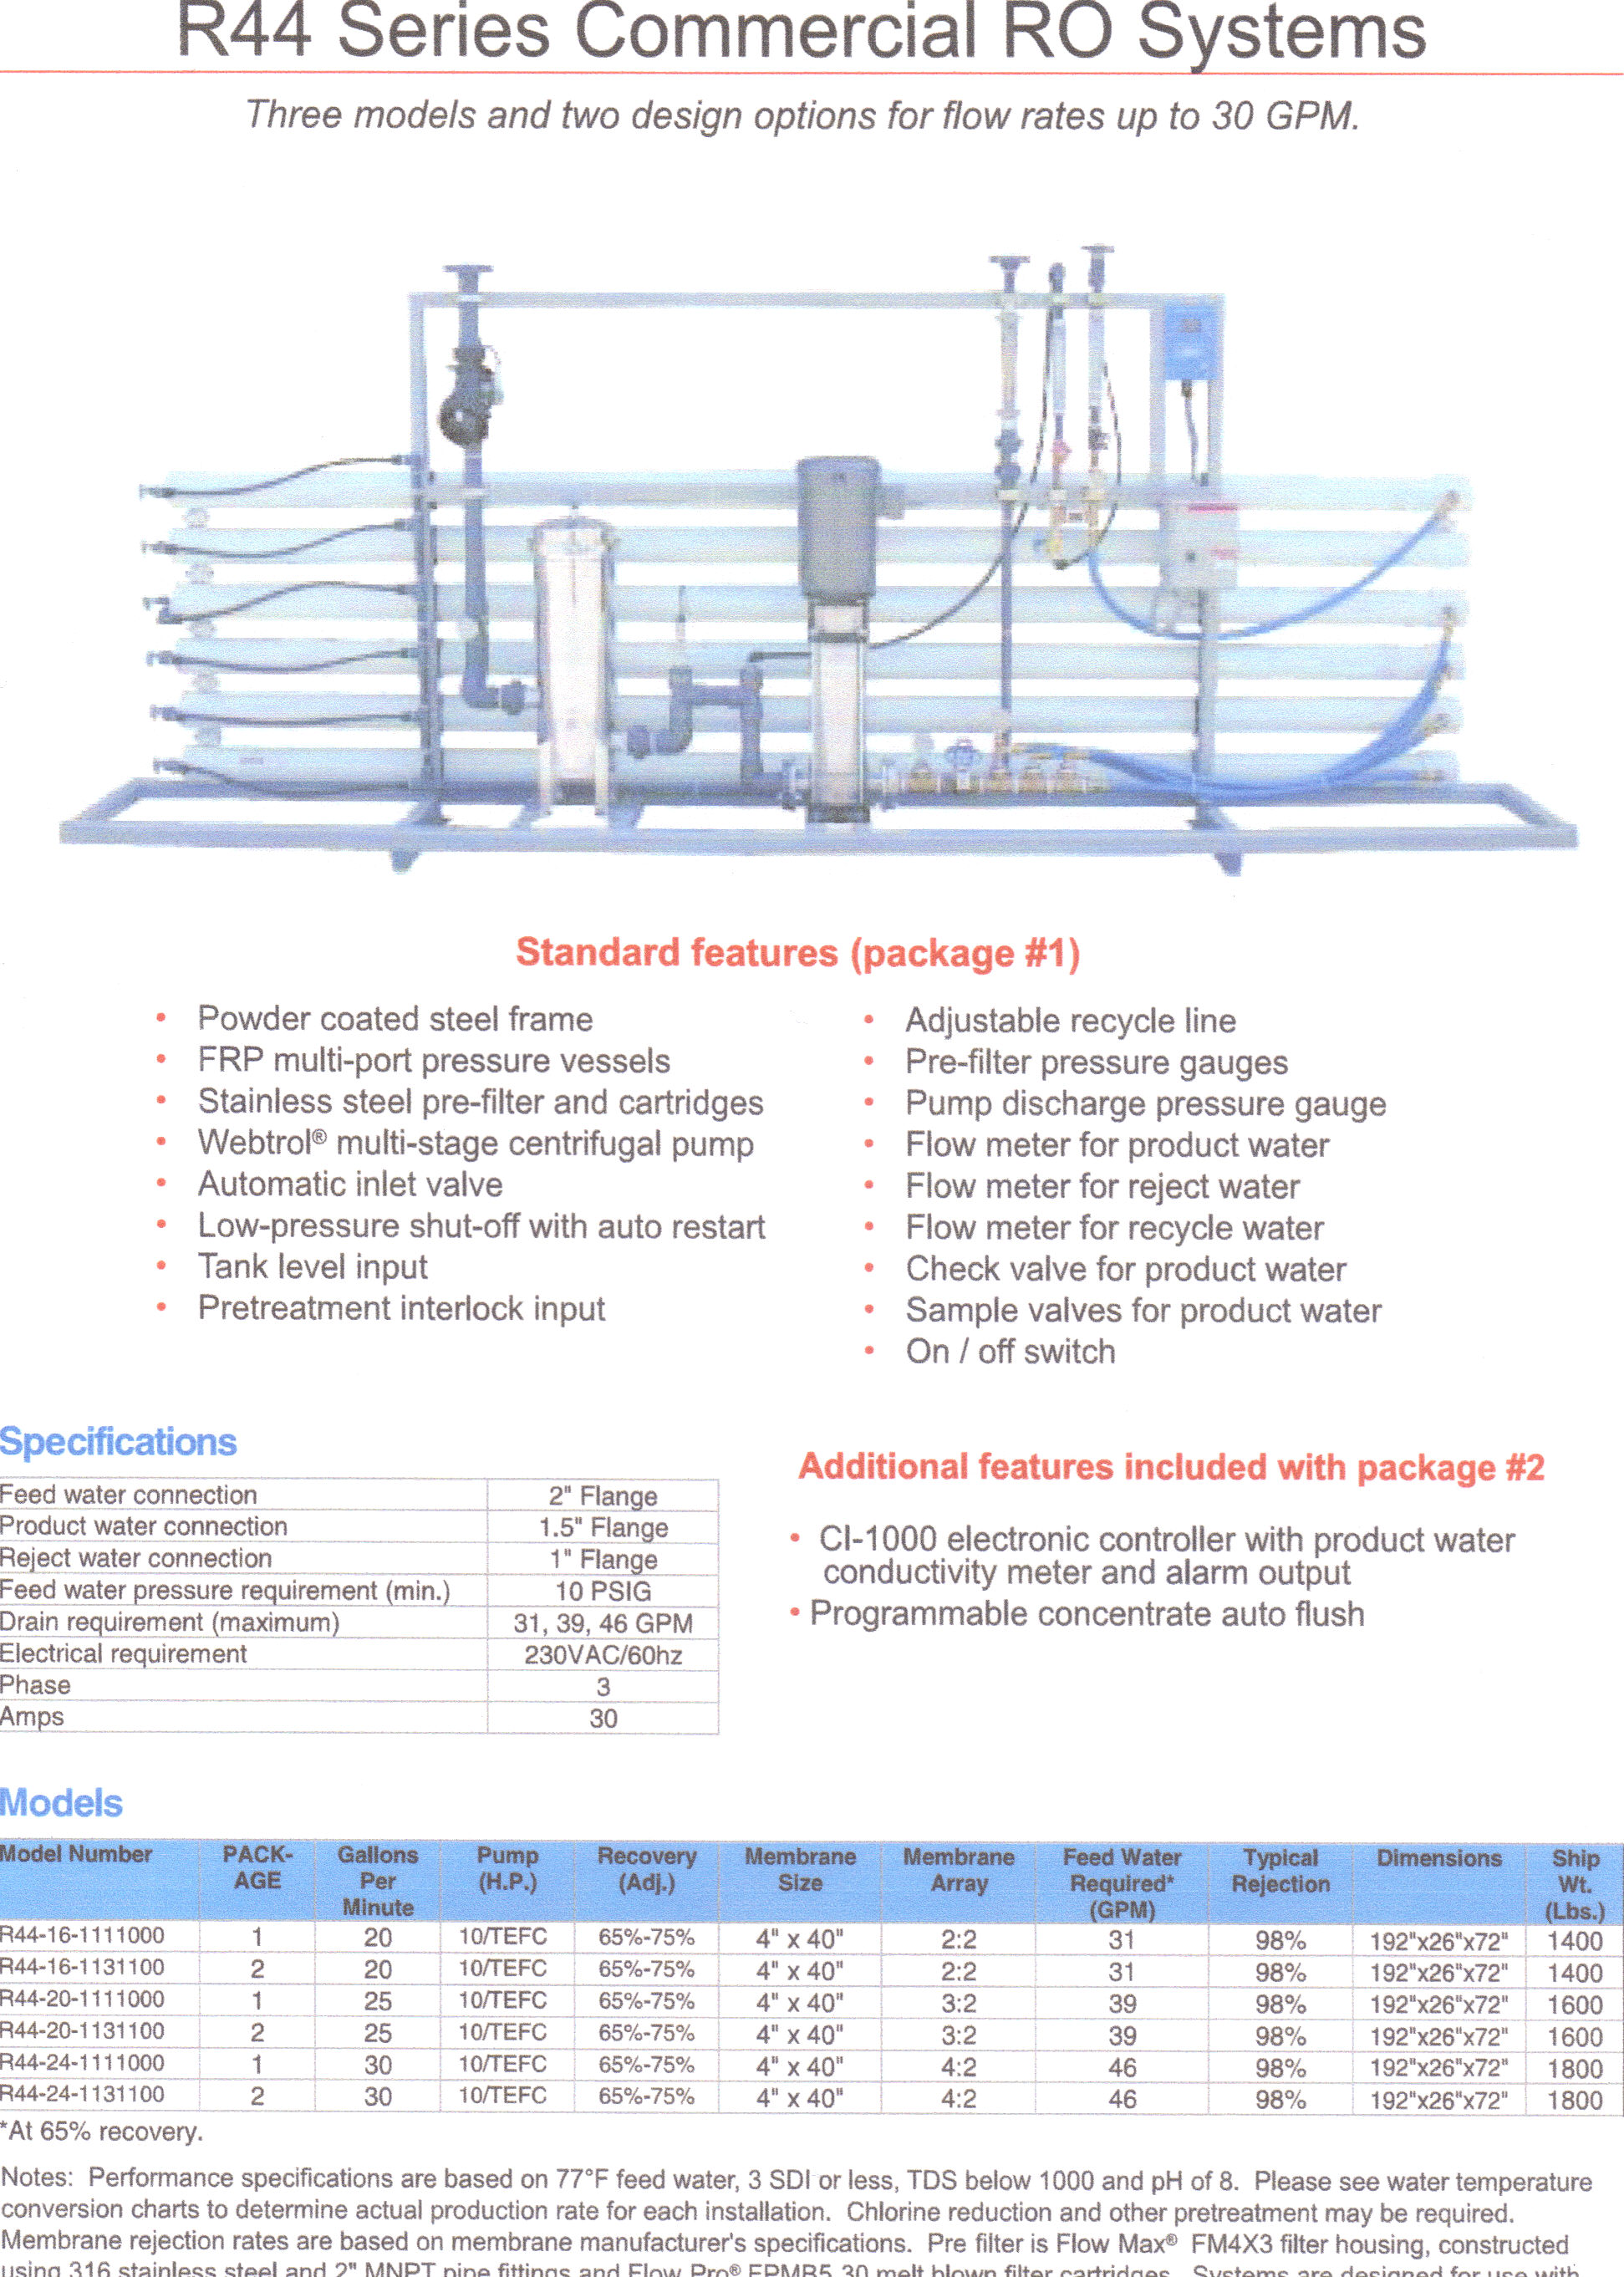 R44 commercial reverse osmosis systems Form 16s Meter Socket Diagram at bayanpartner.co